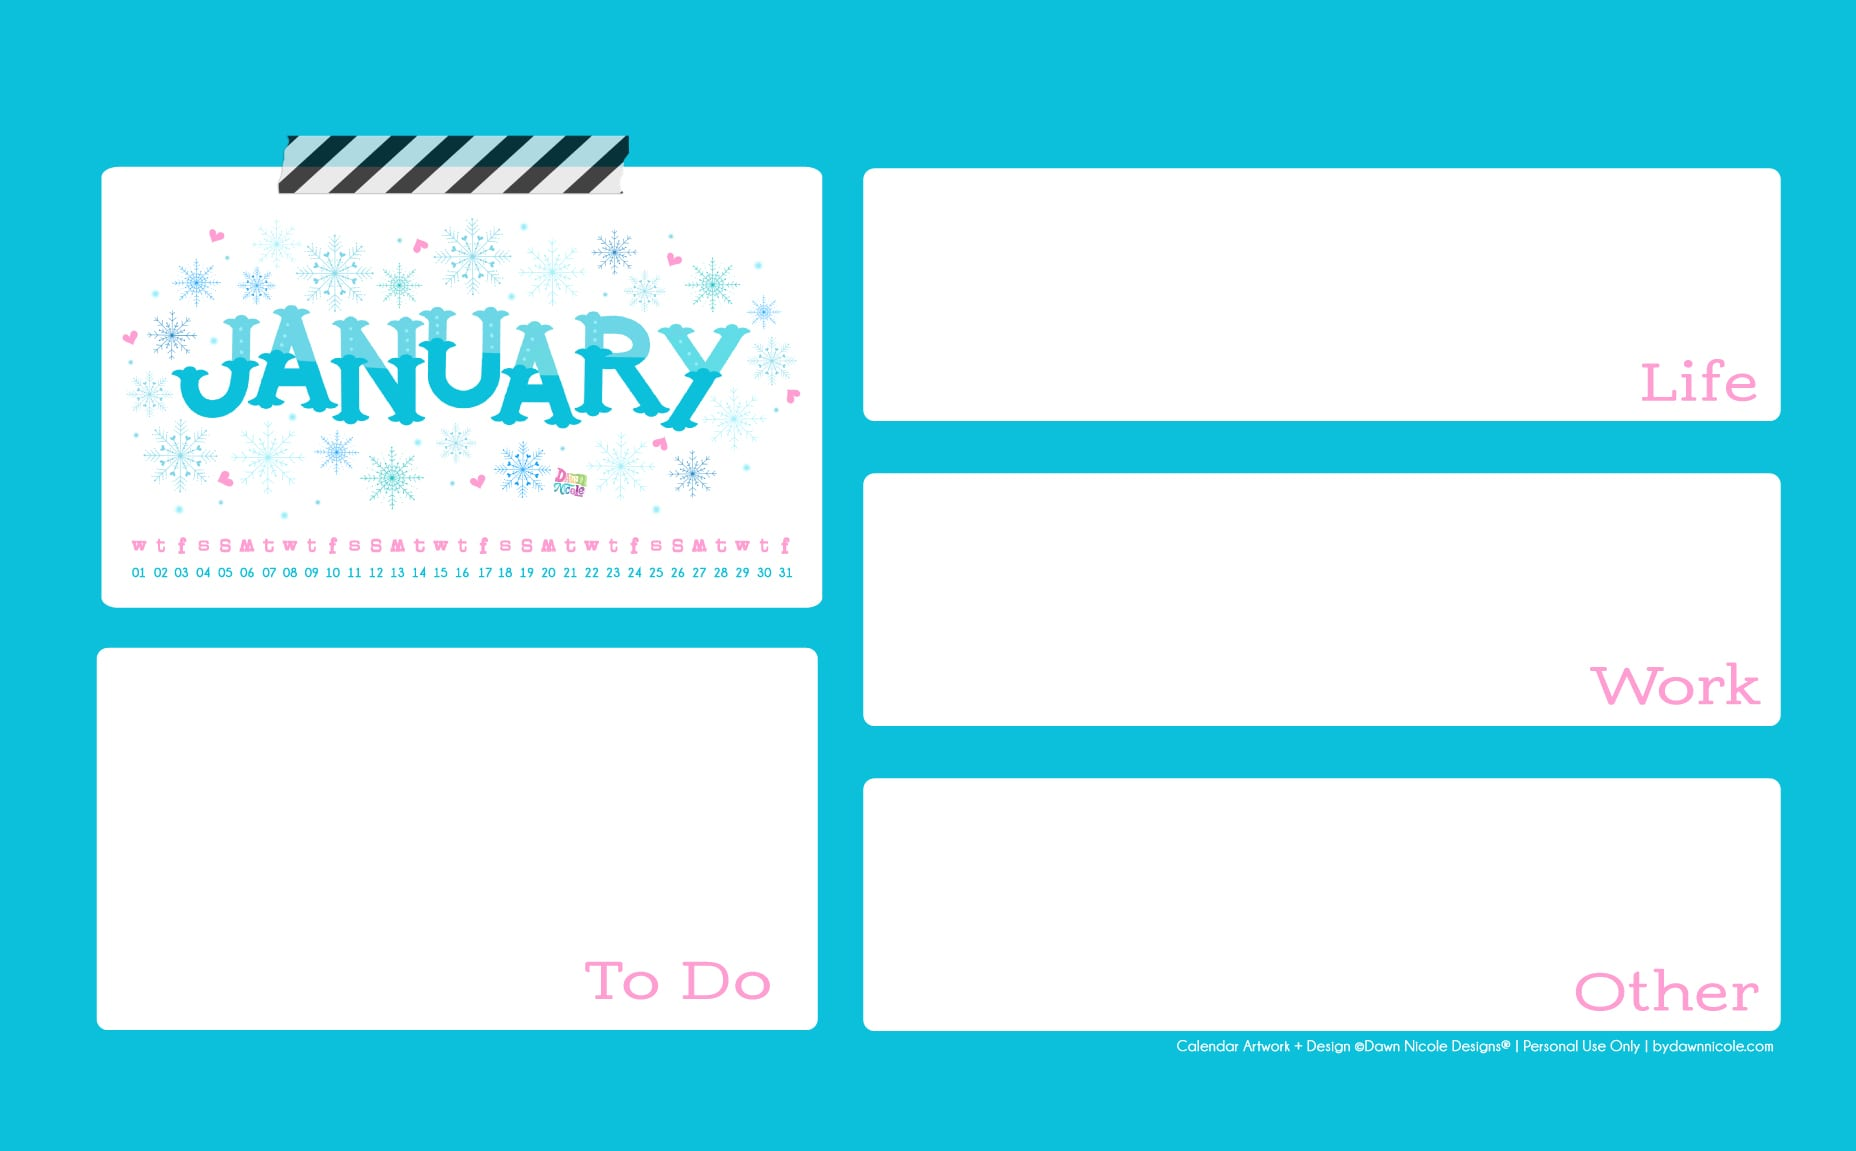 2020 Calendar Printable Wallpapers Dawn Nicole 1856x1151